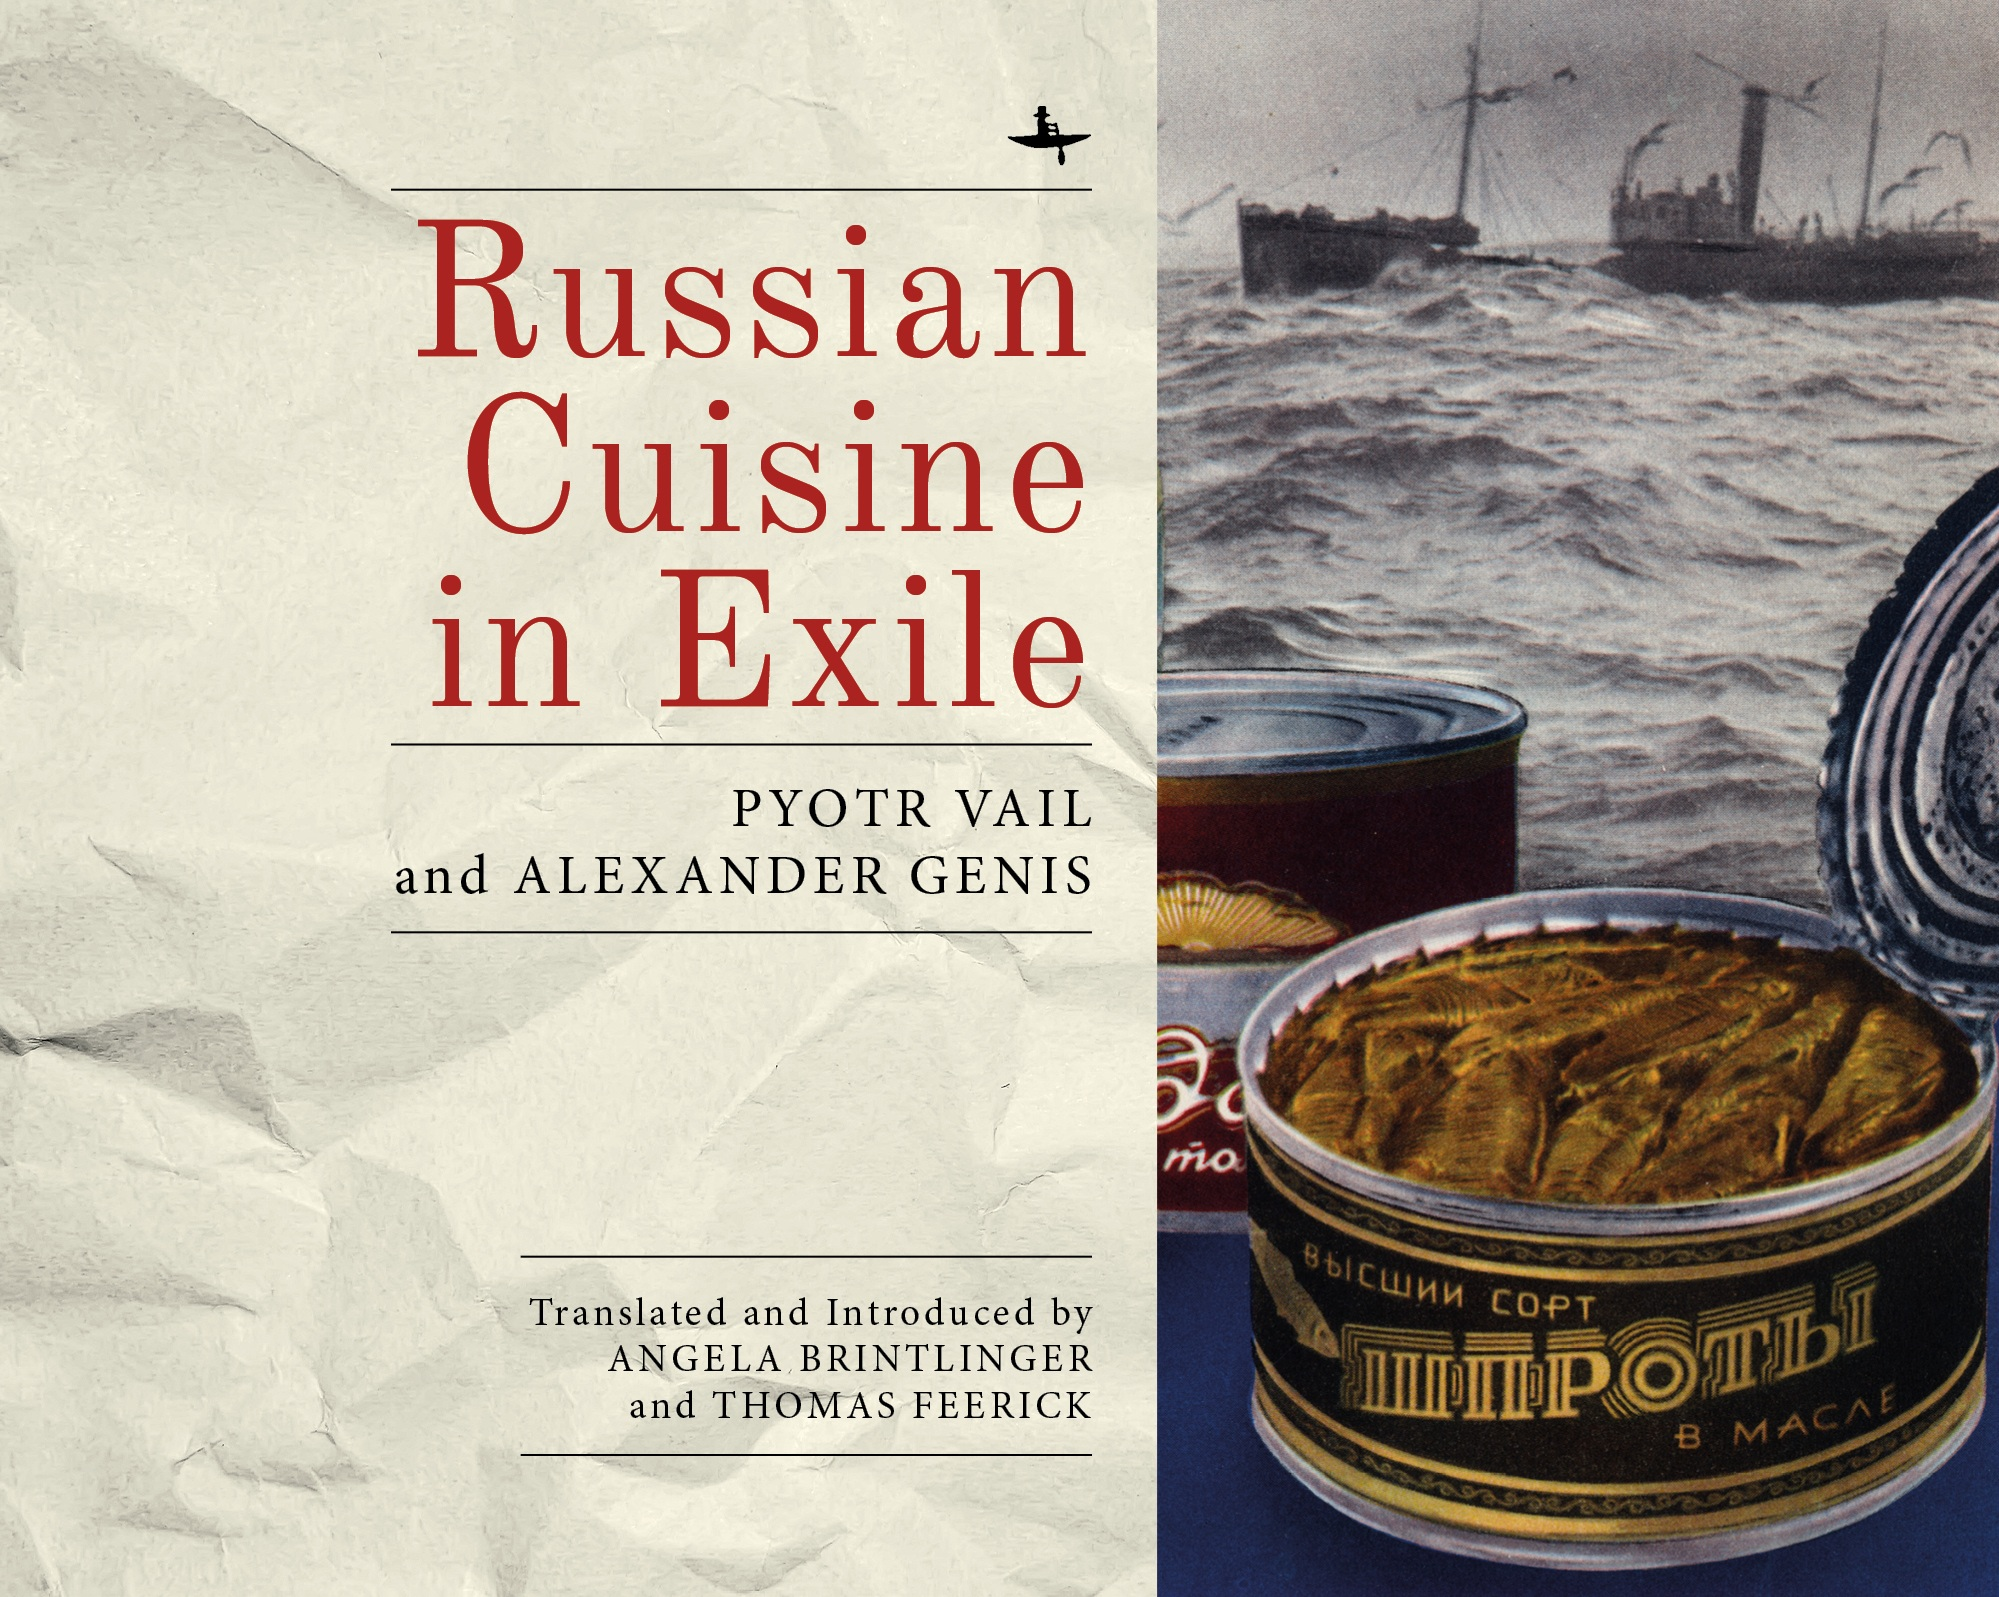 Russian Cuisine in Exile    by Pyotr Vail and Alexander Genis, translated from the Russian by Angela Brintlinger and Thomas Feerick